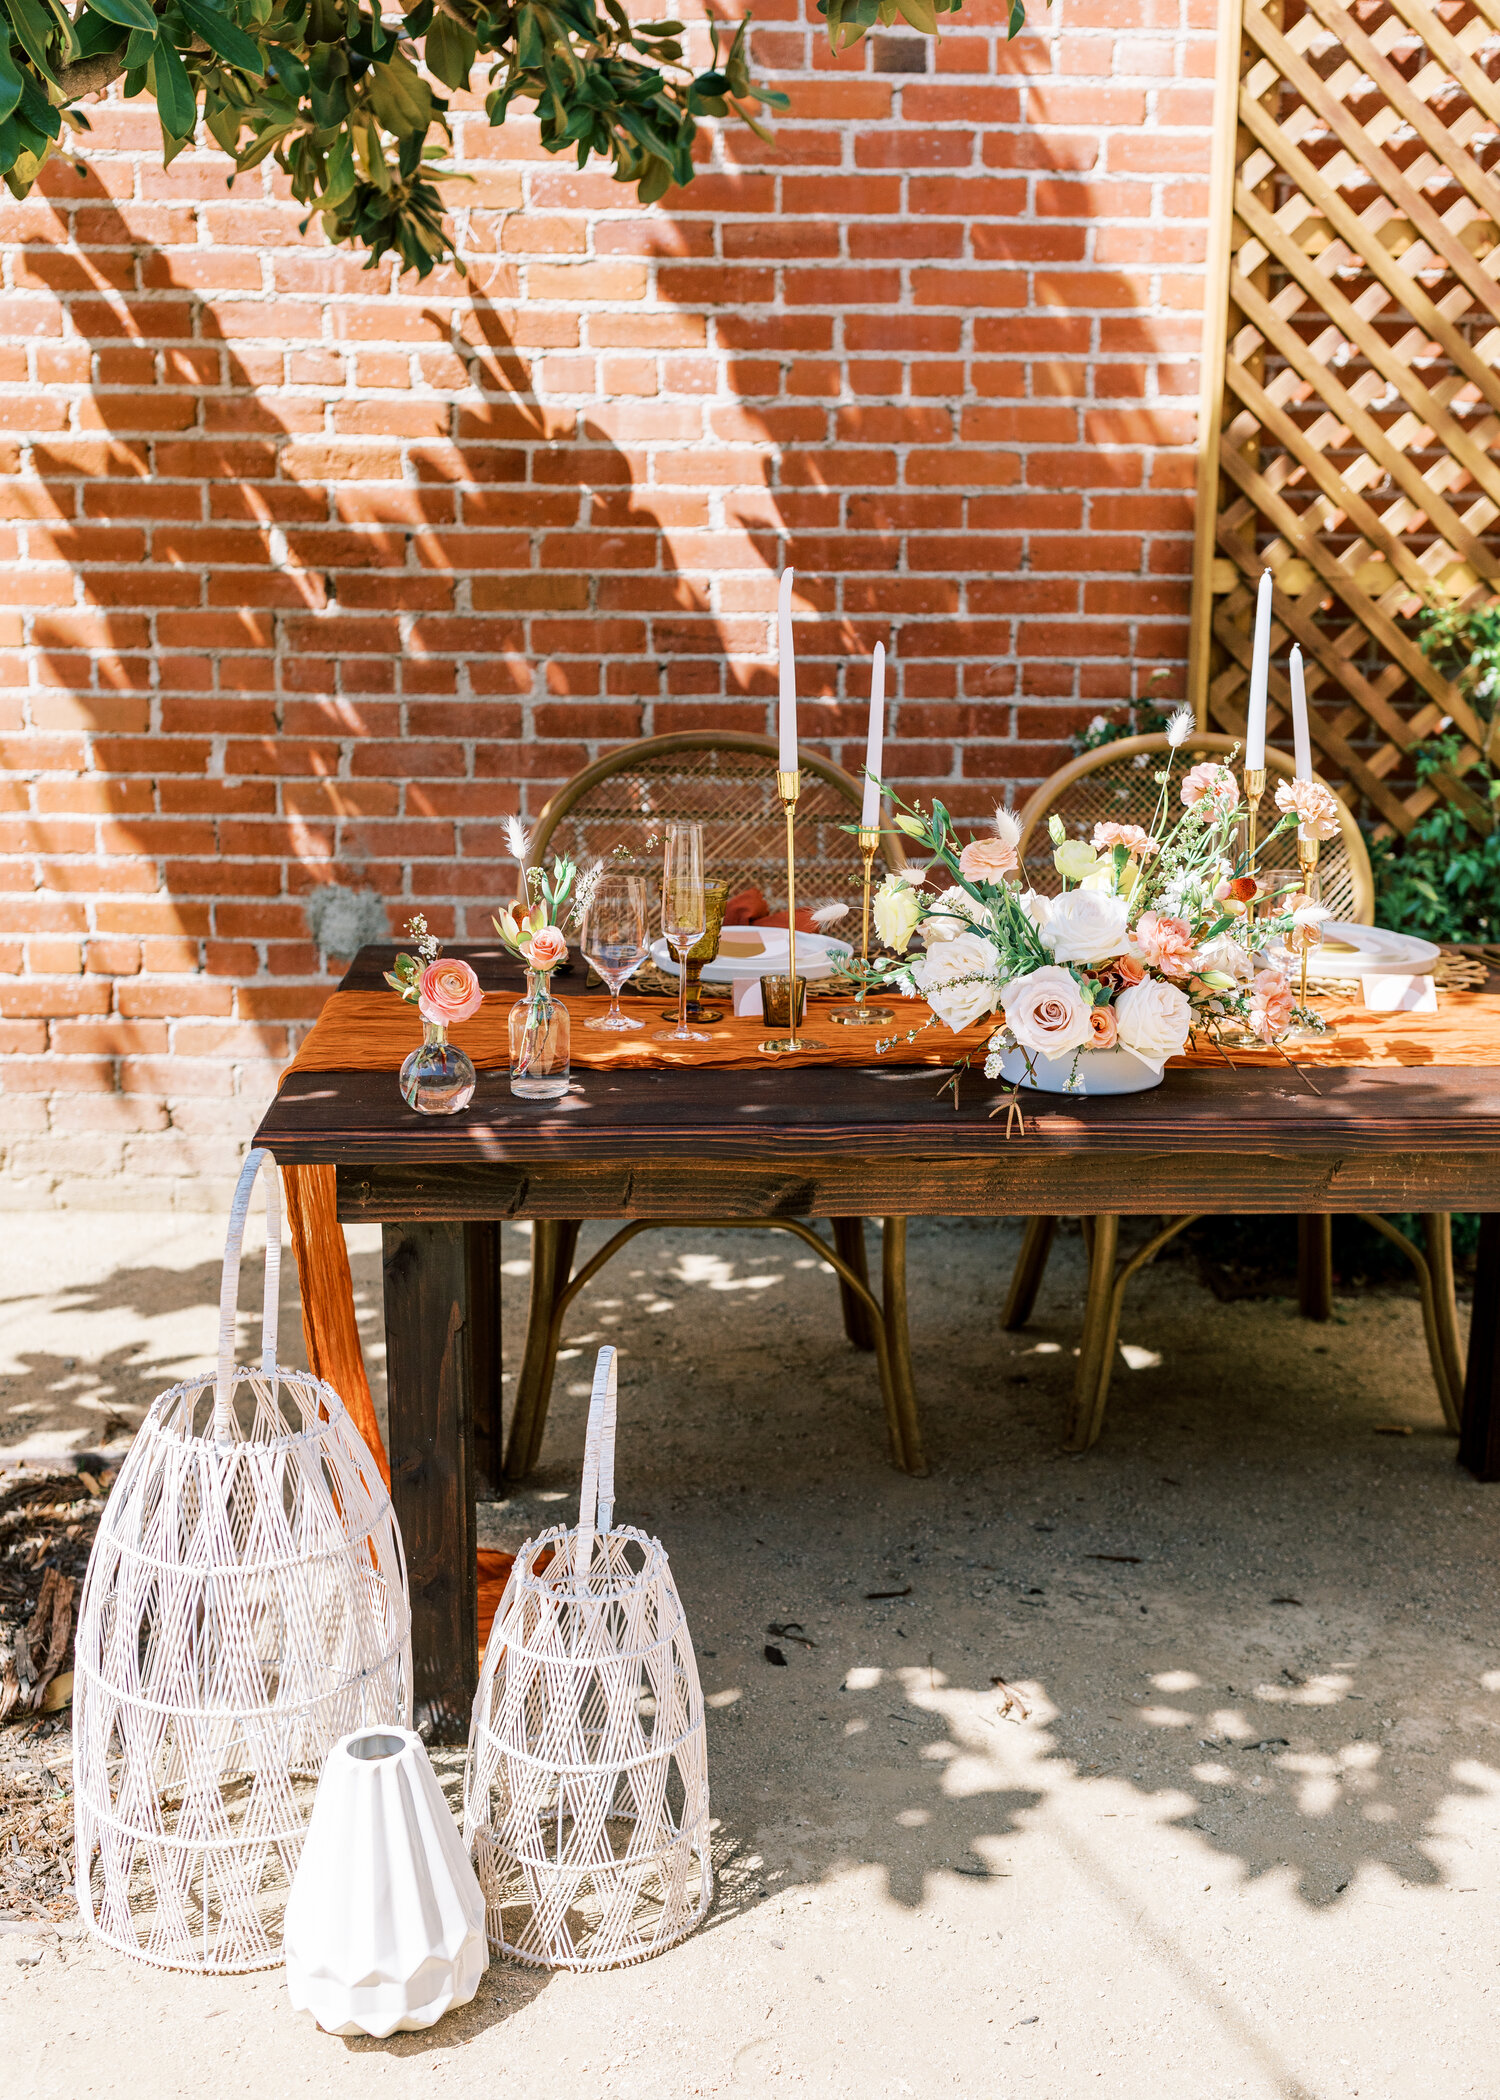 www.santabarbarawedding.com   Events by Fran   Ever After Petite Venue   Kendall Ann Photo   Tangled Lotus   Amigo Party Rentals   Love and Fromage   Styled Reception Table